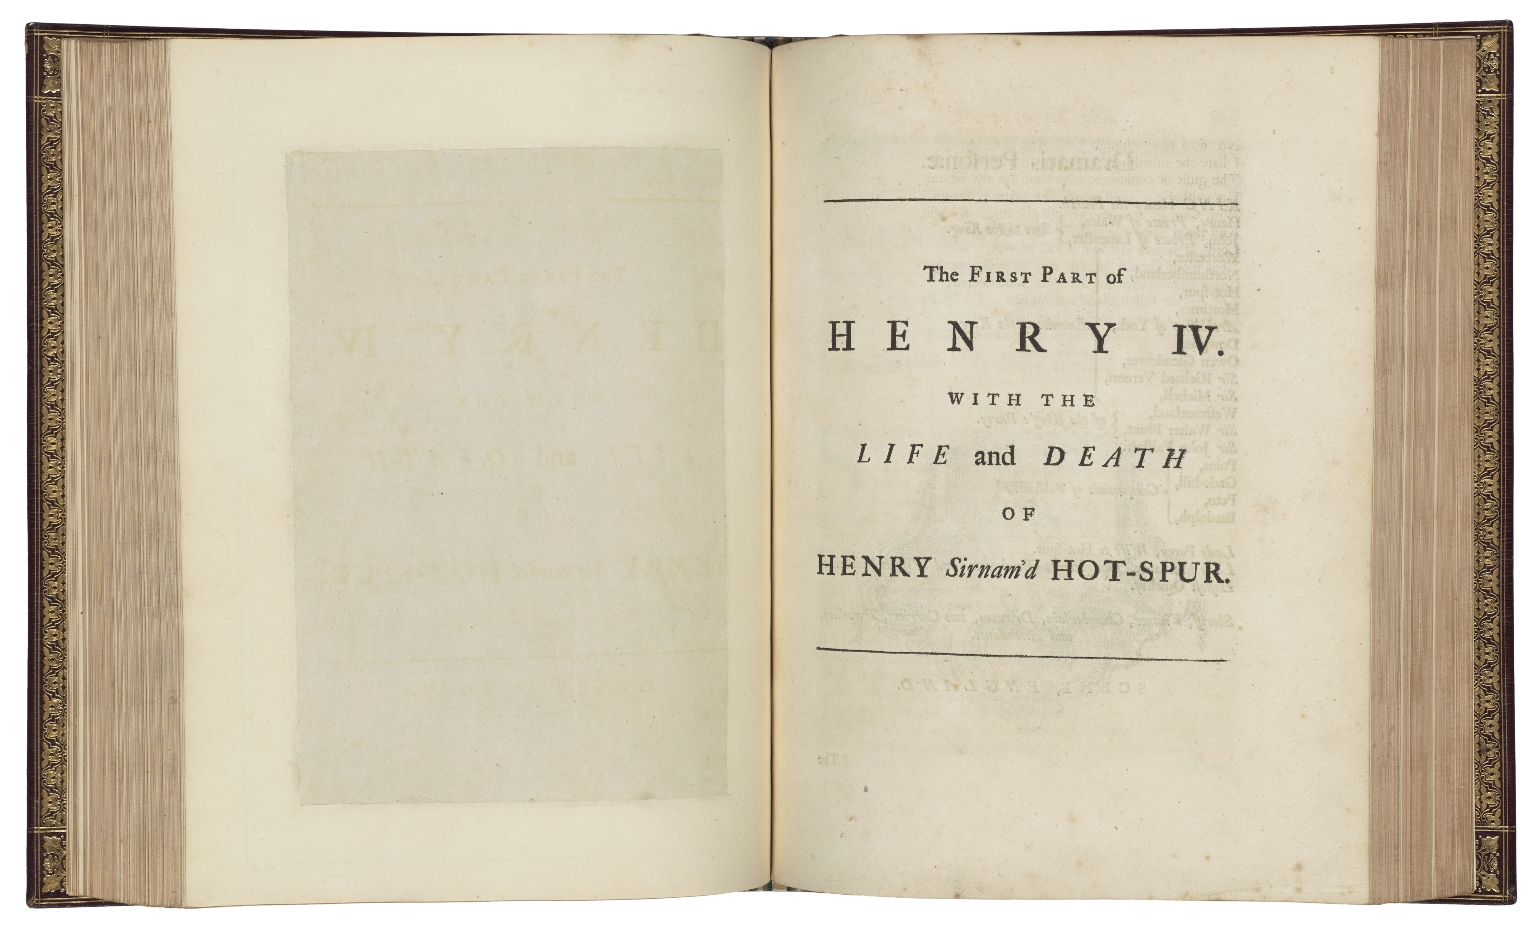 [Plays. 1743] The works of Shakespear : in six volumes : carefully revised and corrected by the former editions, and adorned with sculptures designed and executed by the best hands.